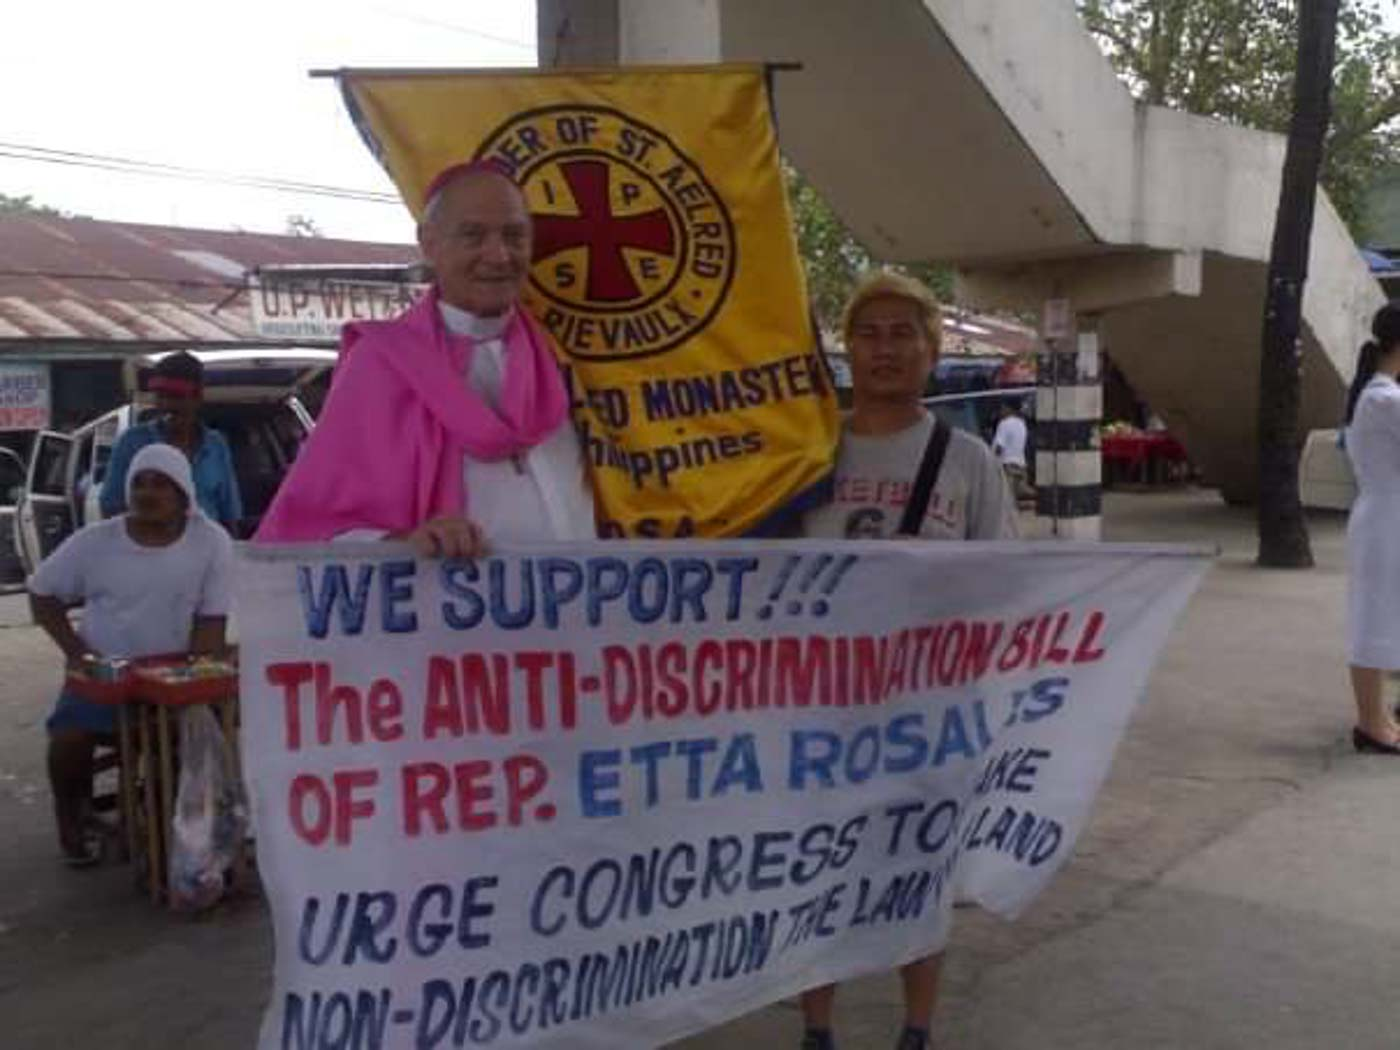 SUPPORTING ANTI-DISCRIMINATION BILL. Father Richard Mickley, representing the Order of St Aelred, shows support for the Anti-Discrimination Bill filed by Representative Etta Rosales. Photo courtesy of Father Richard Mickley